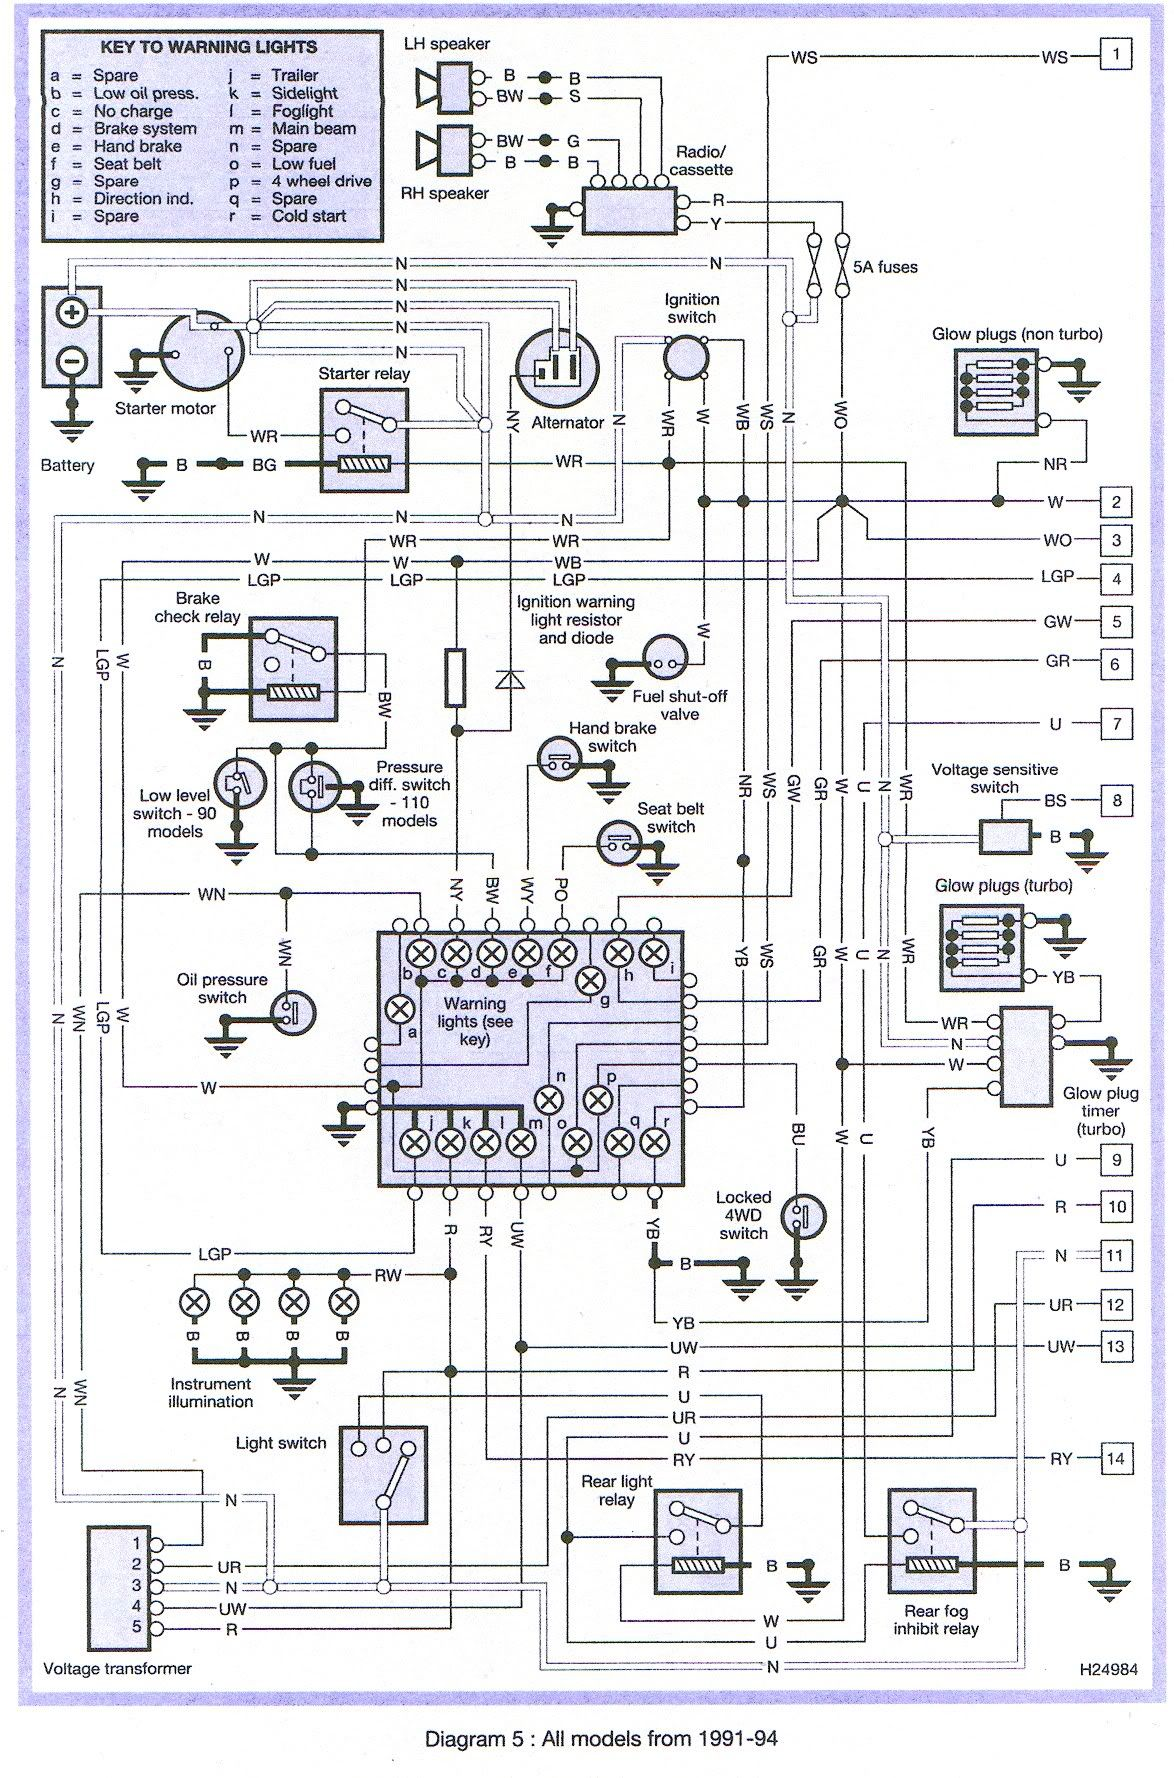 2004 land rover engine diagram wiring diagram img wiring diagram 2004 land rover hse [ 1174 x 1778 Pixel ]